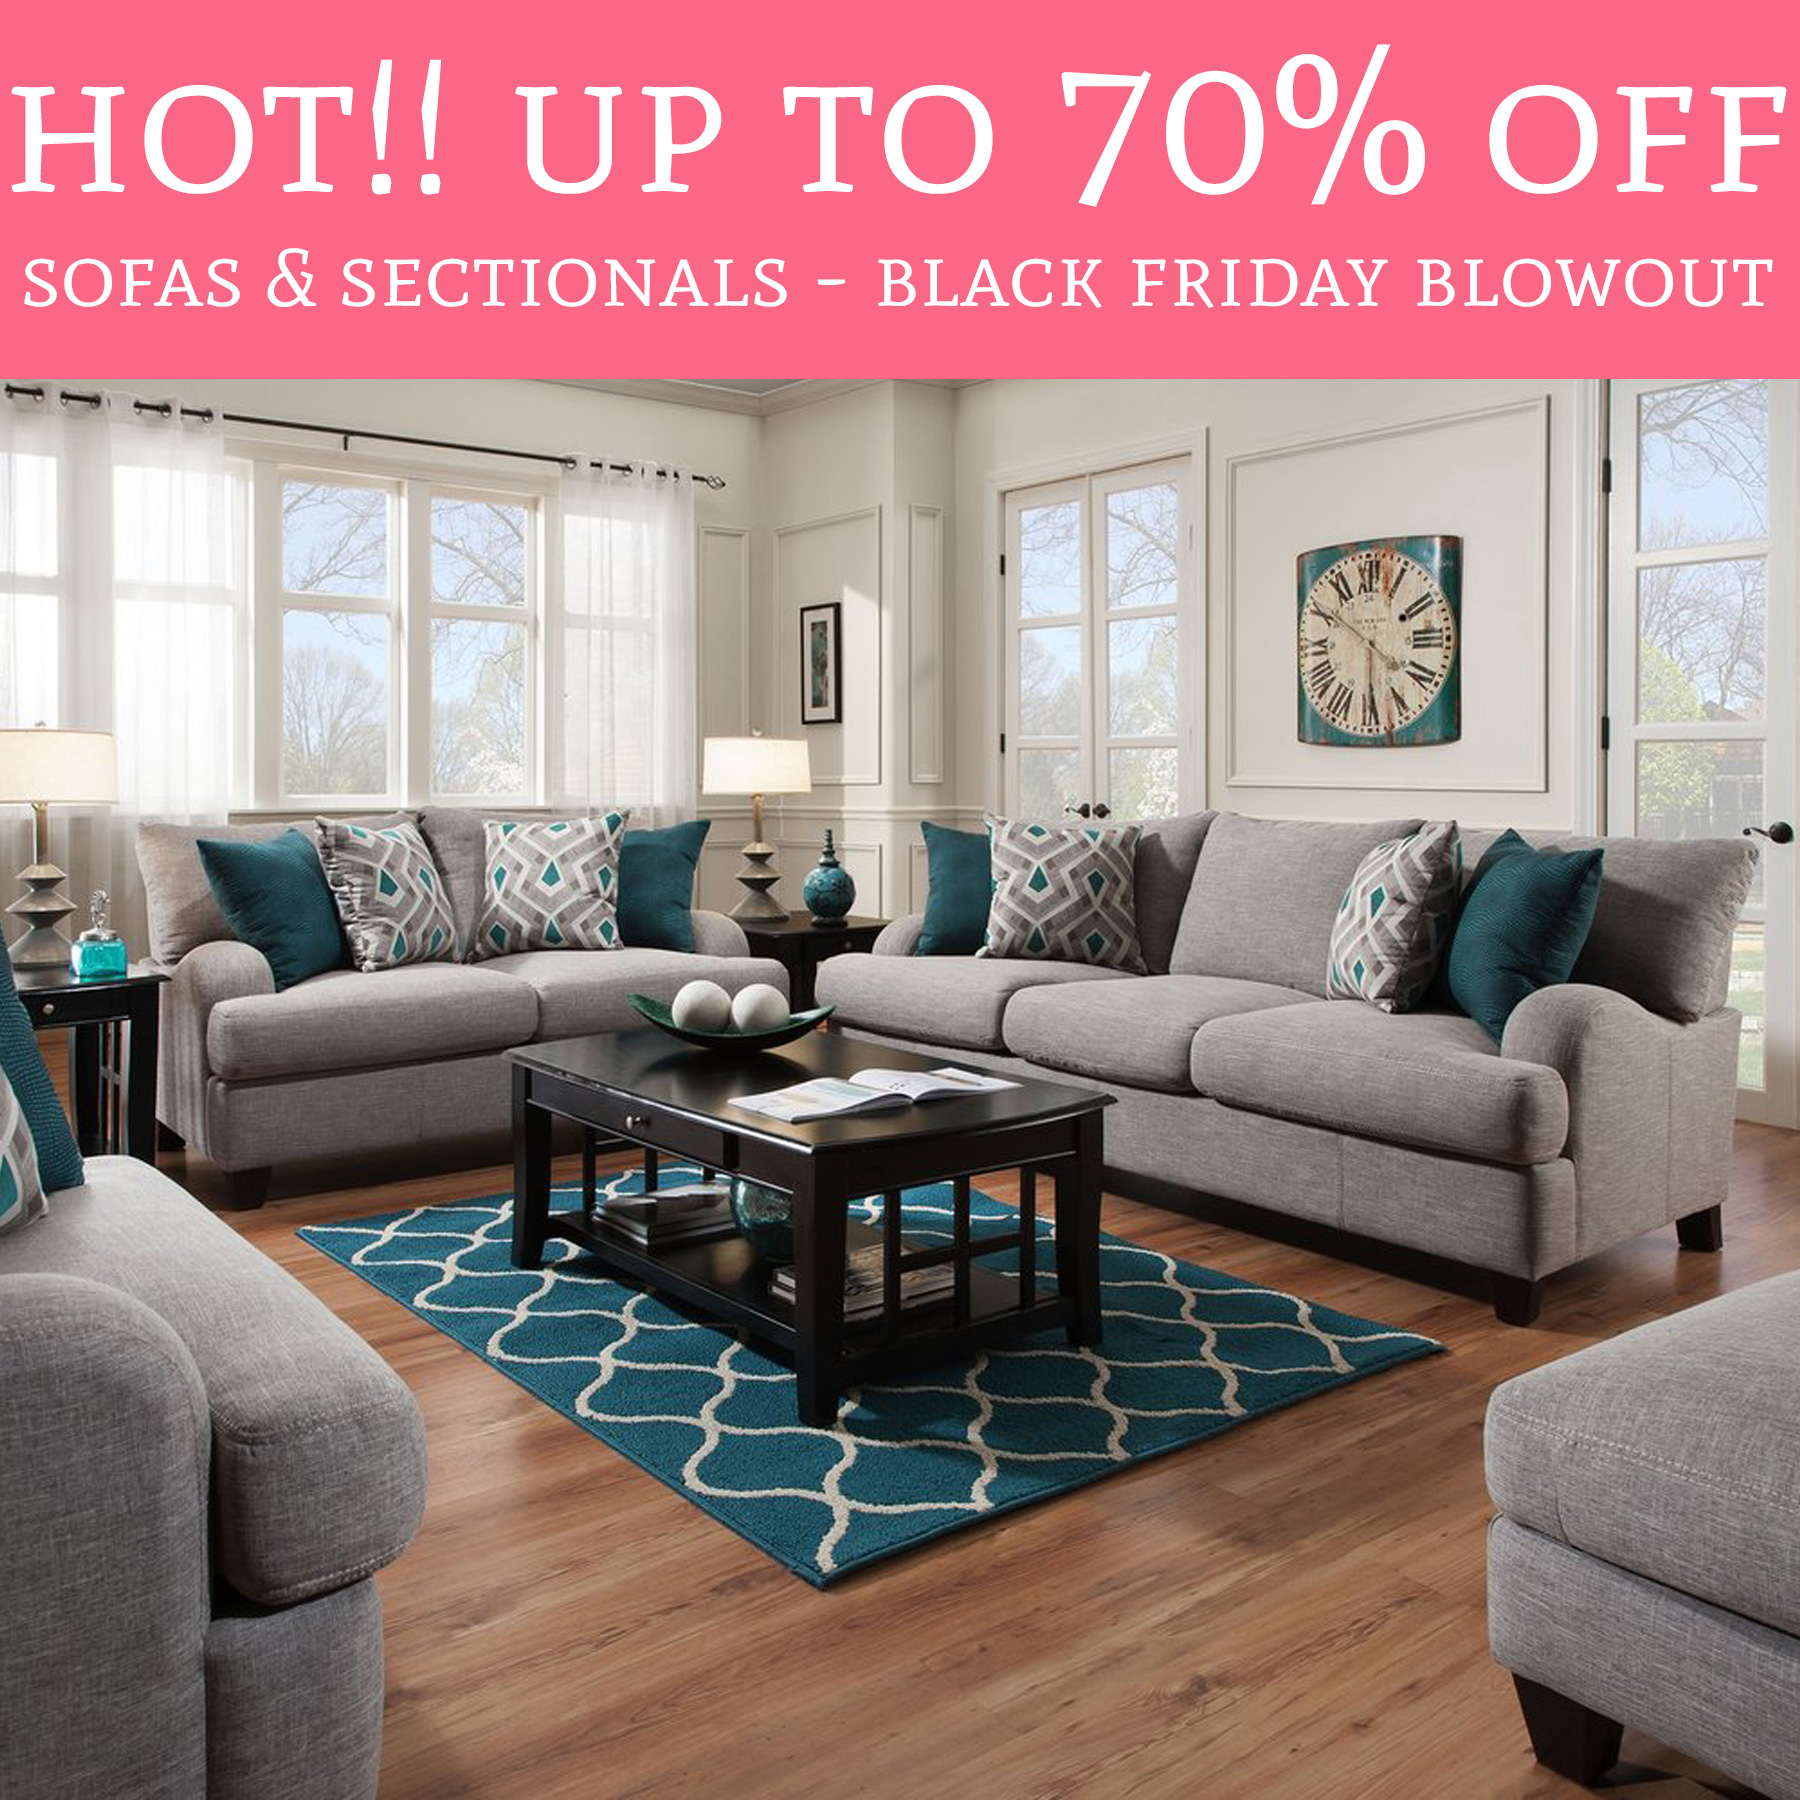 Hot Black Friday Blowout Sale Off Sofas